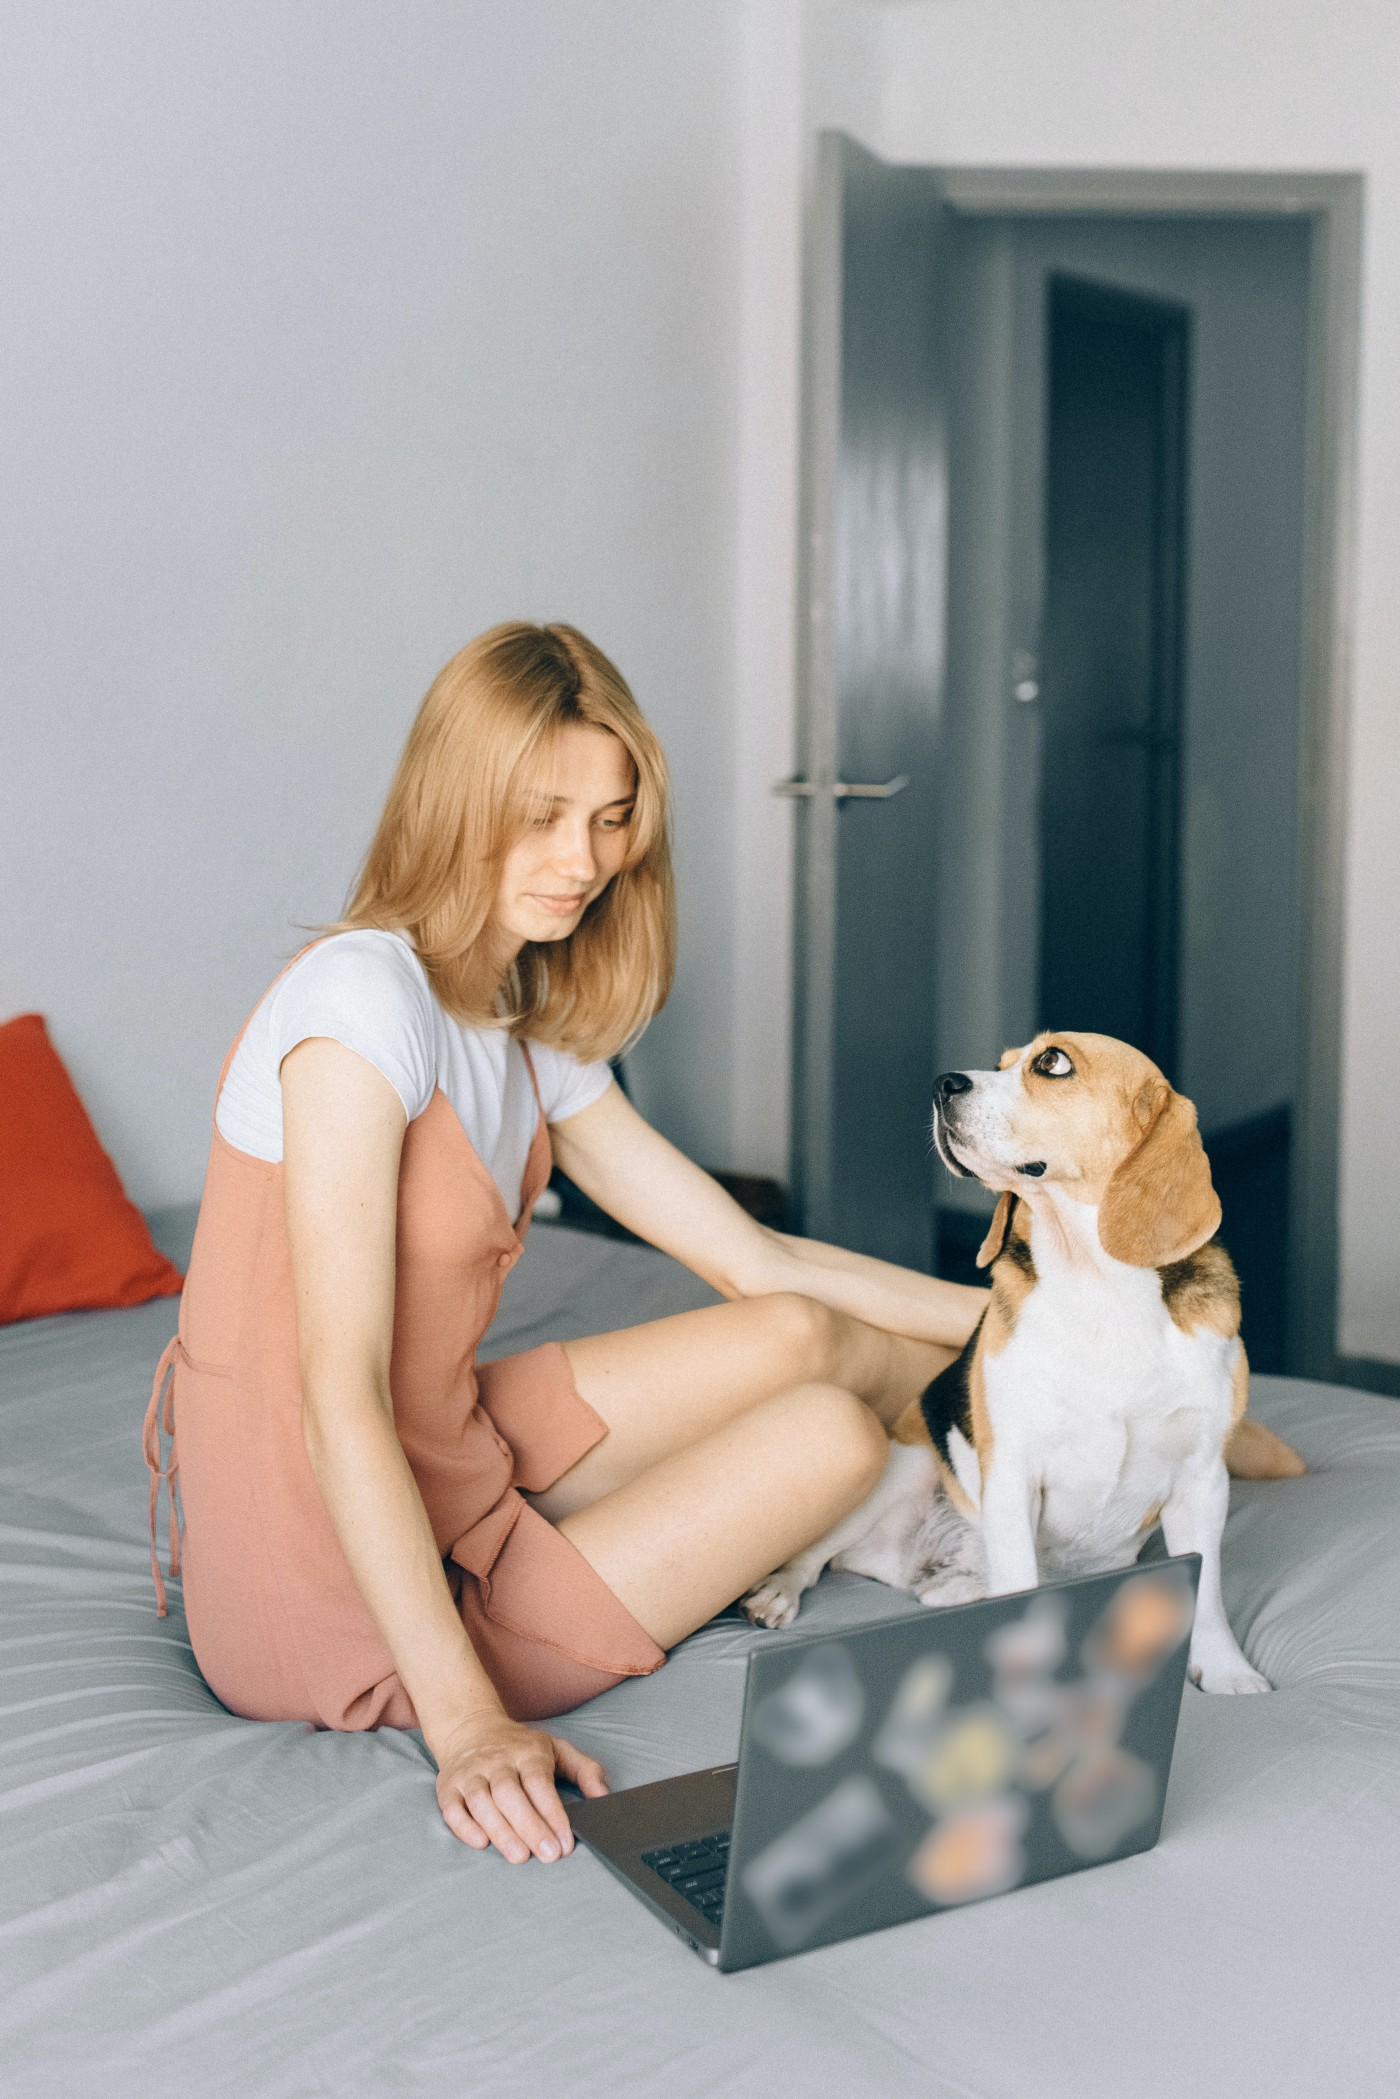 A girl and her pet.